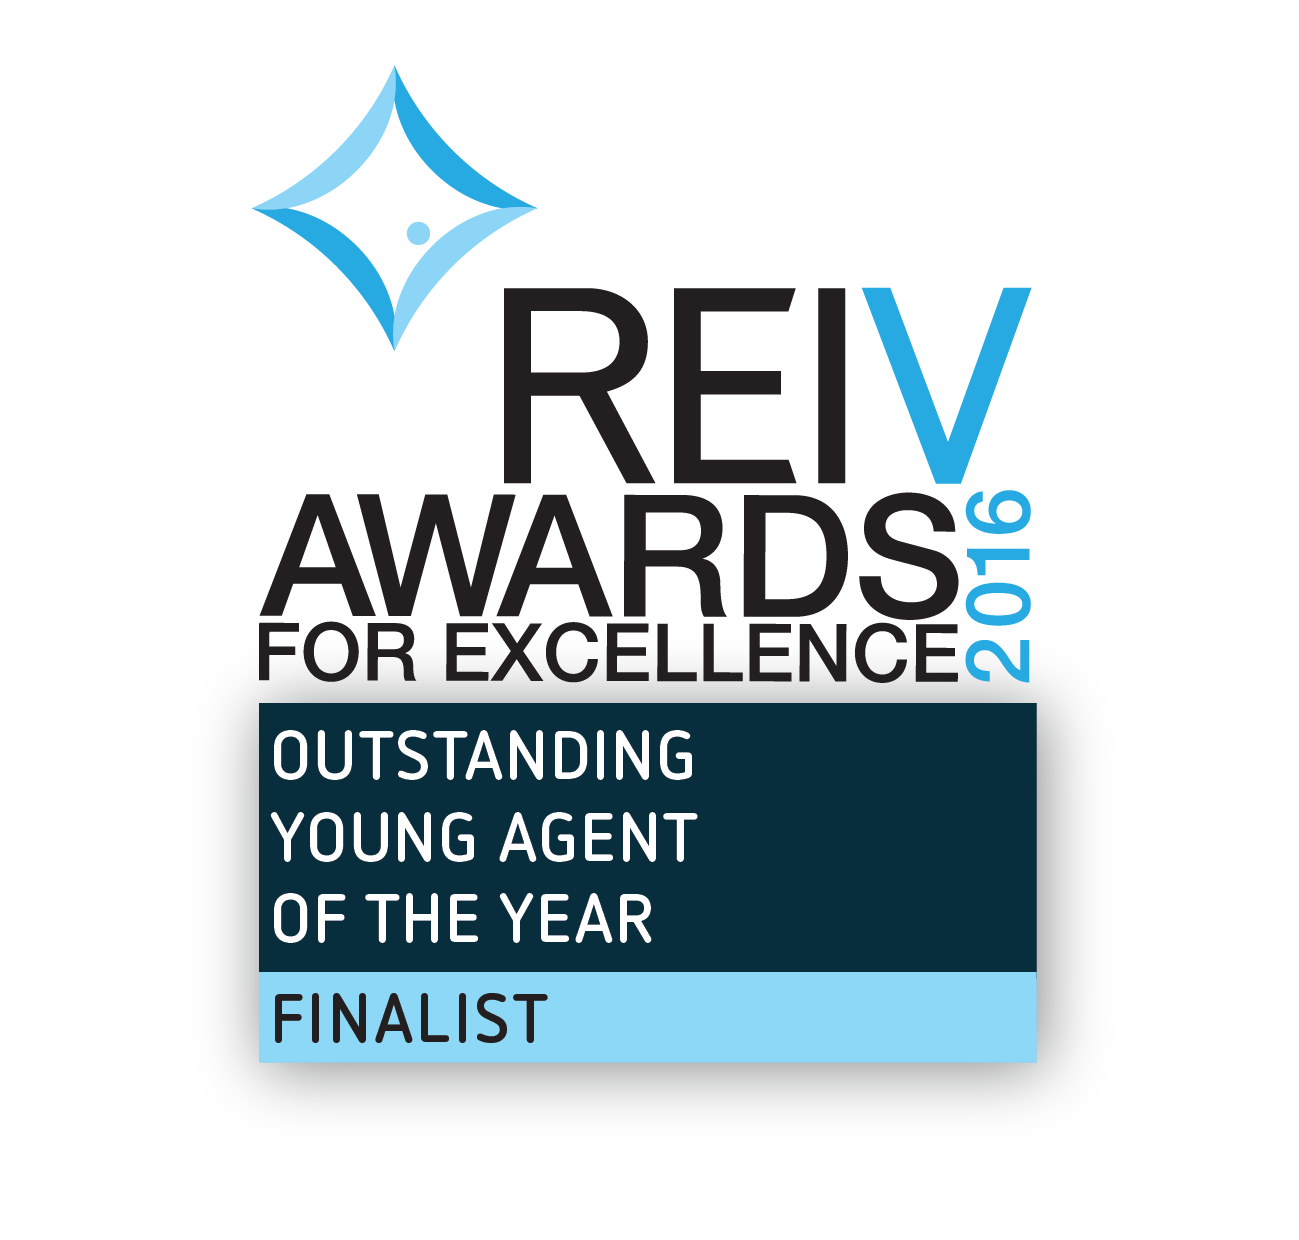 REIV_Outstanding young agent of the year.png